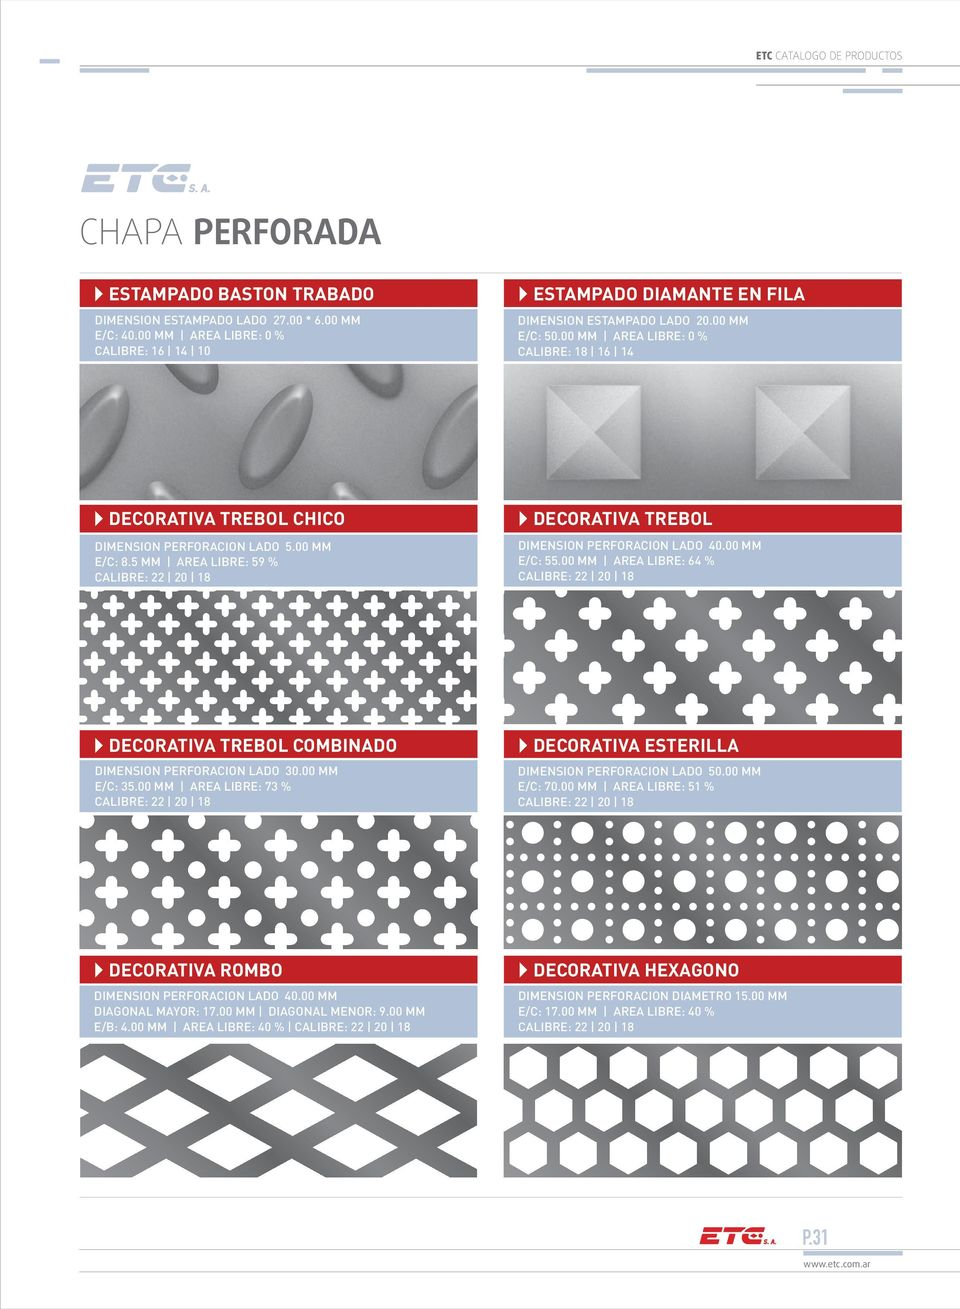 00 MM AREA LIBRE: 64 % DECORATIVA TREBOL COMBINADO DIMENSION PERFORACION LADO 30.00 MM E/C: 35.00 MM AREA LIBRE: 73 % DECORATIVA ESTERILLA DIMENSION PERFORACION LADO 50.00 MM E/C: 70.